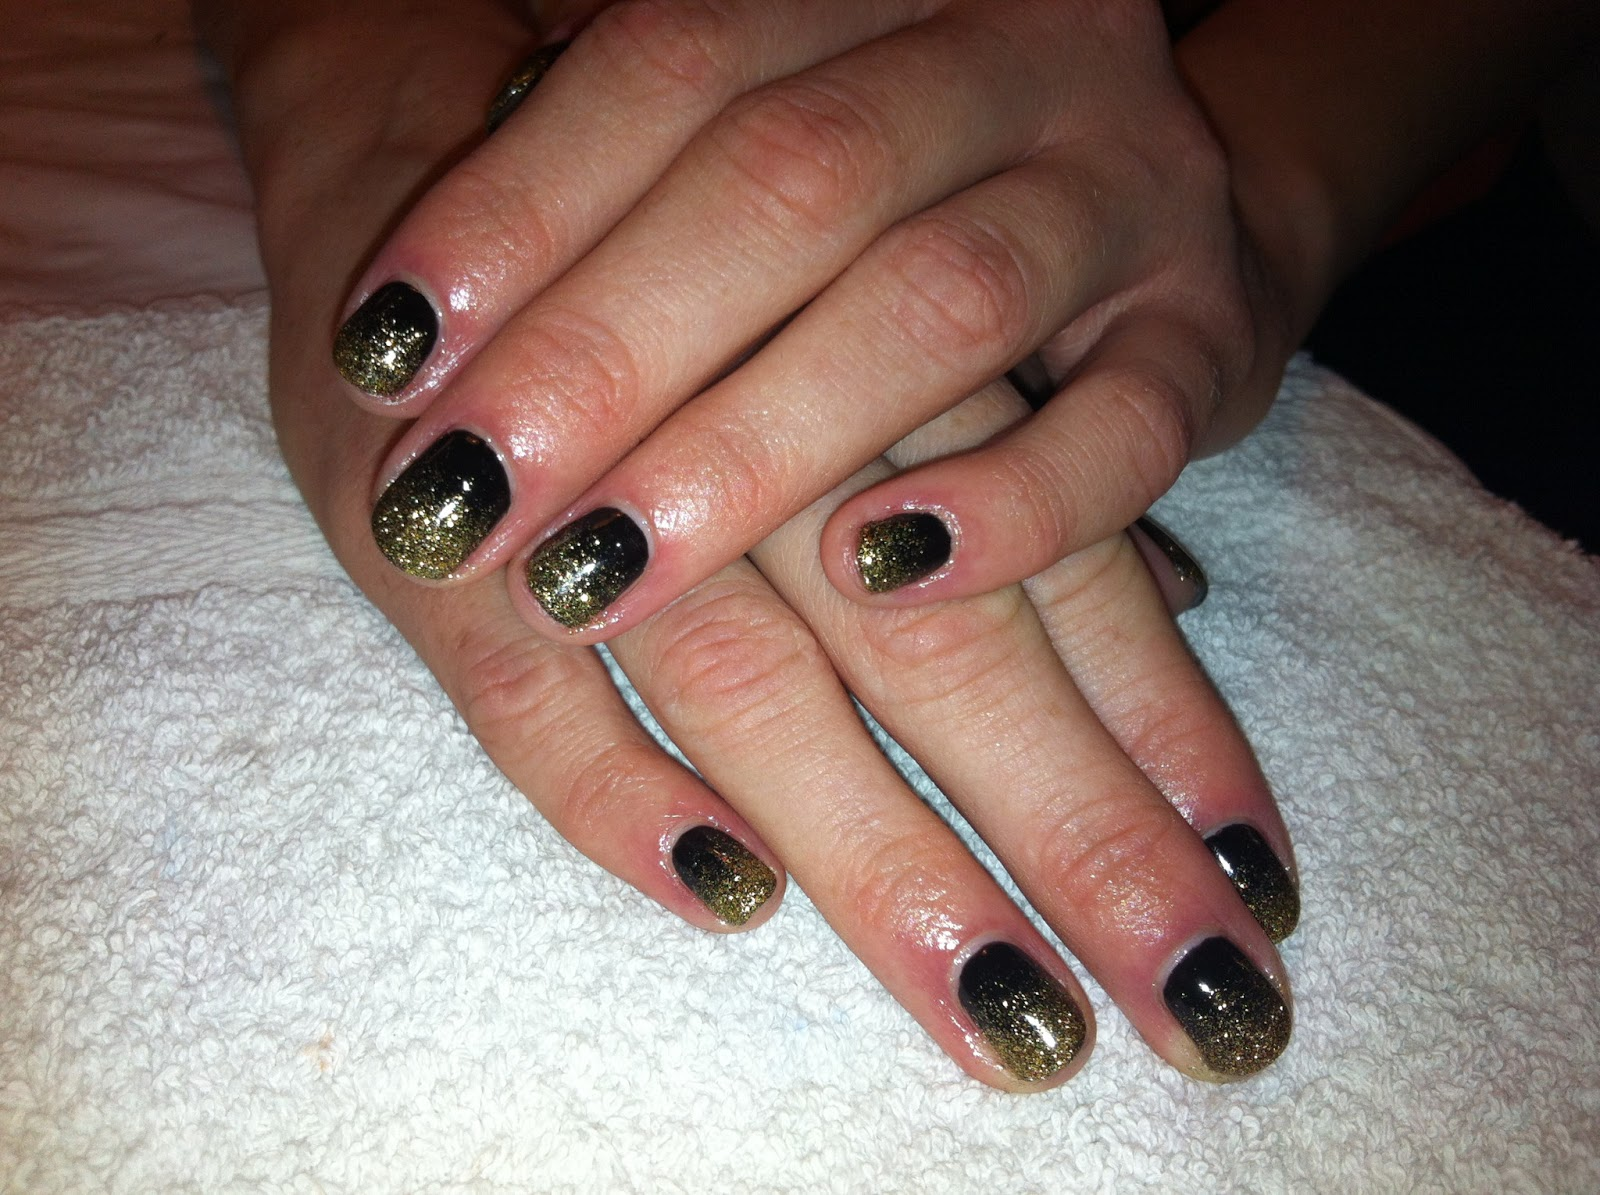 Cnd Shellac Nail Art Black And Gold Glitter